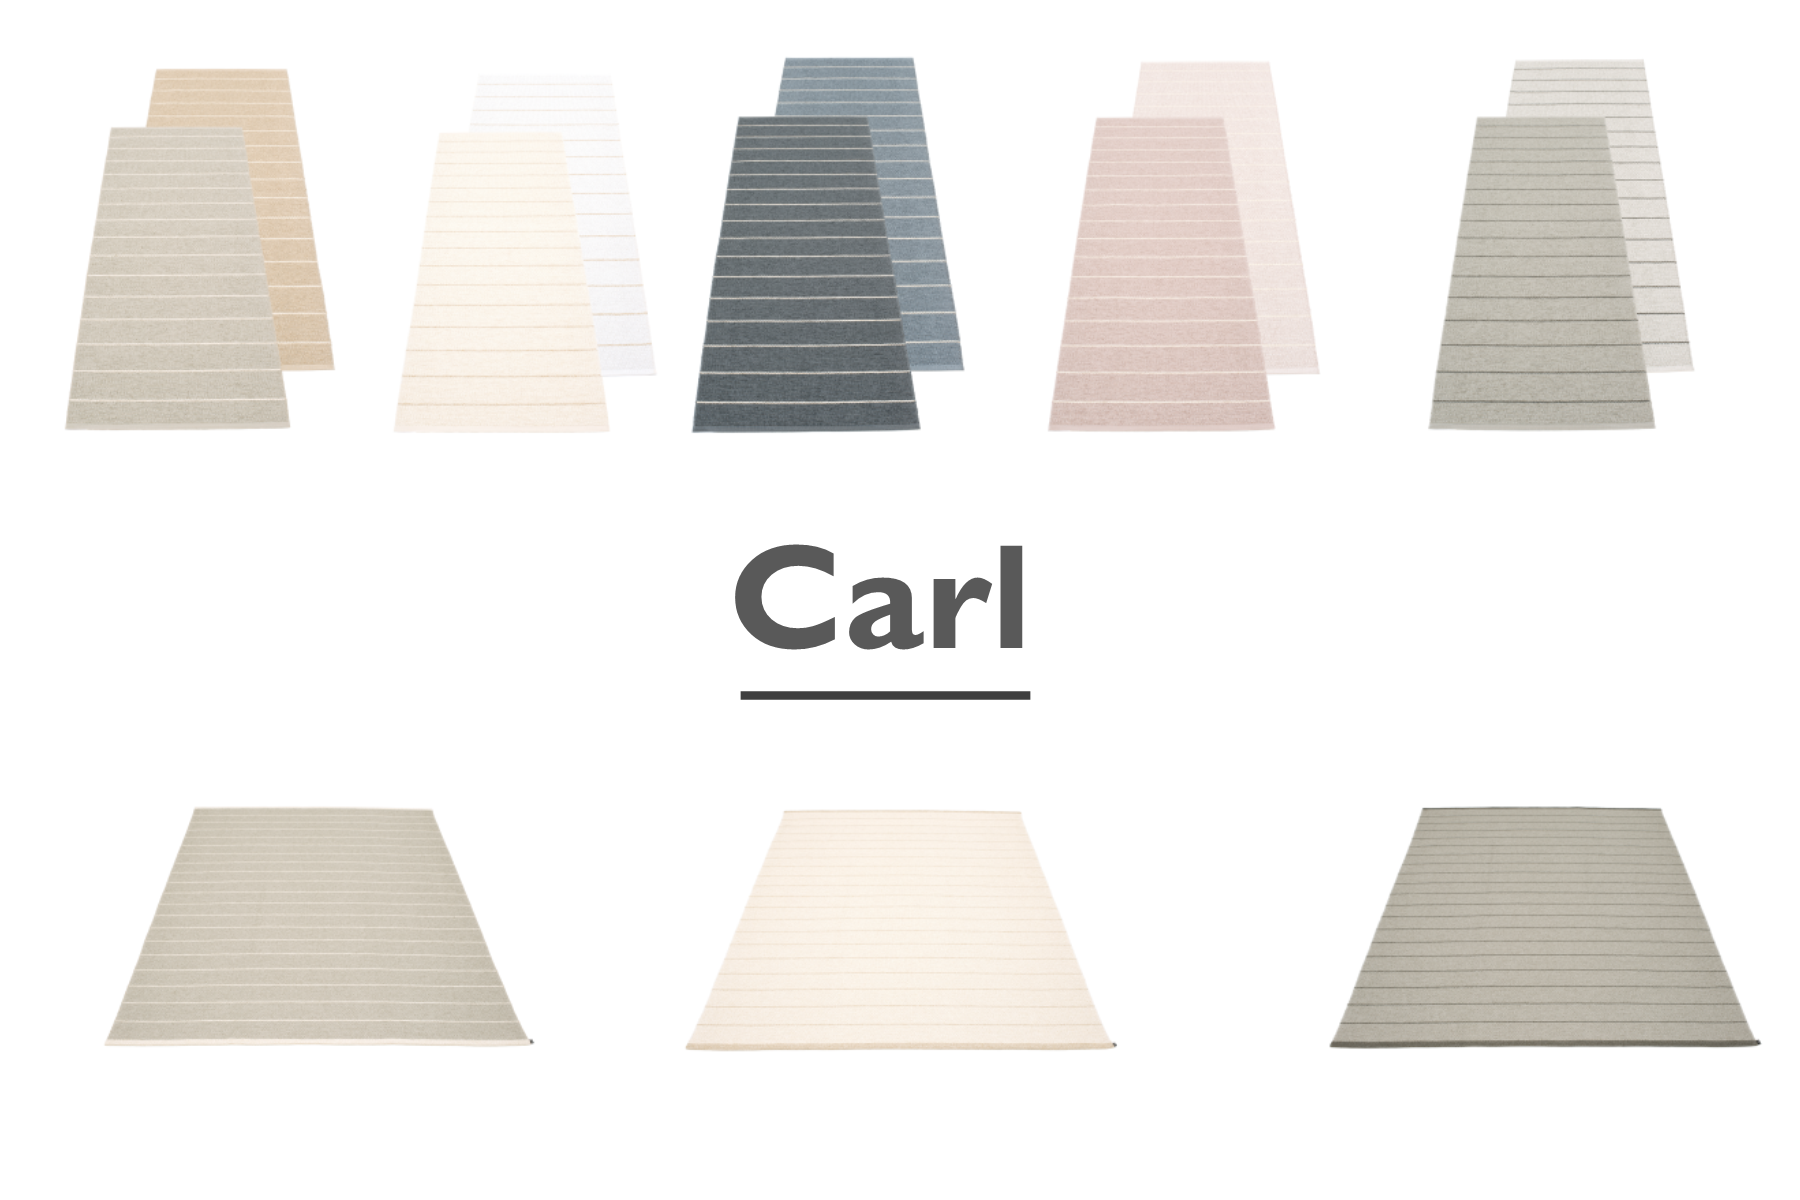 carl-summary.png